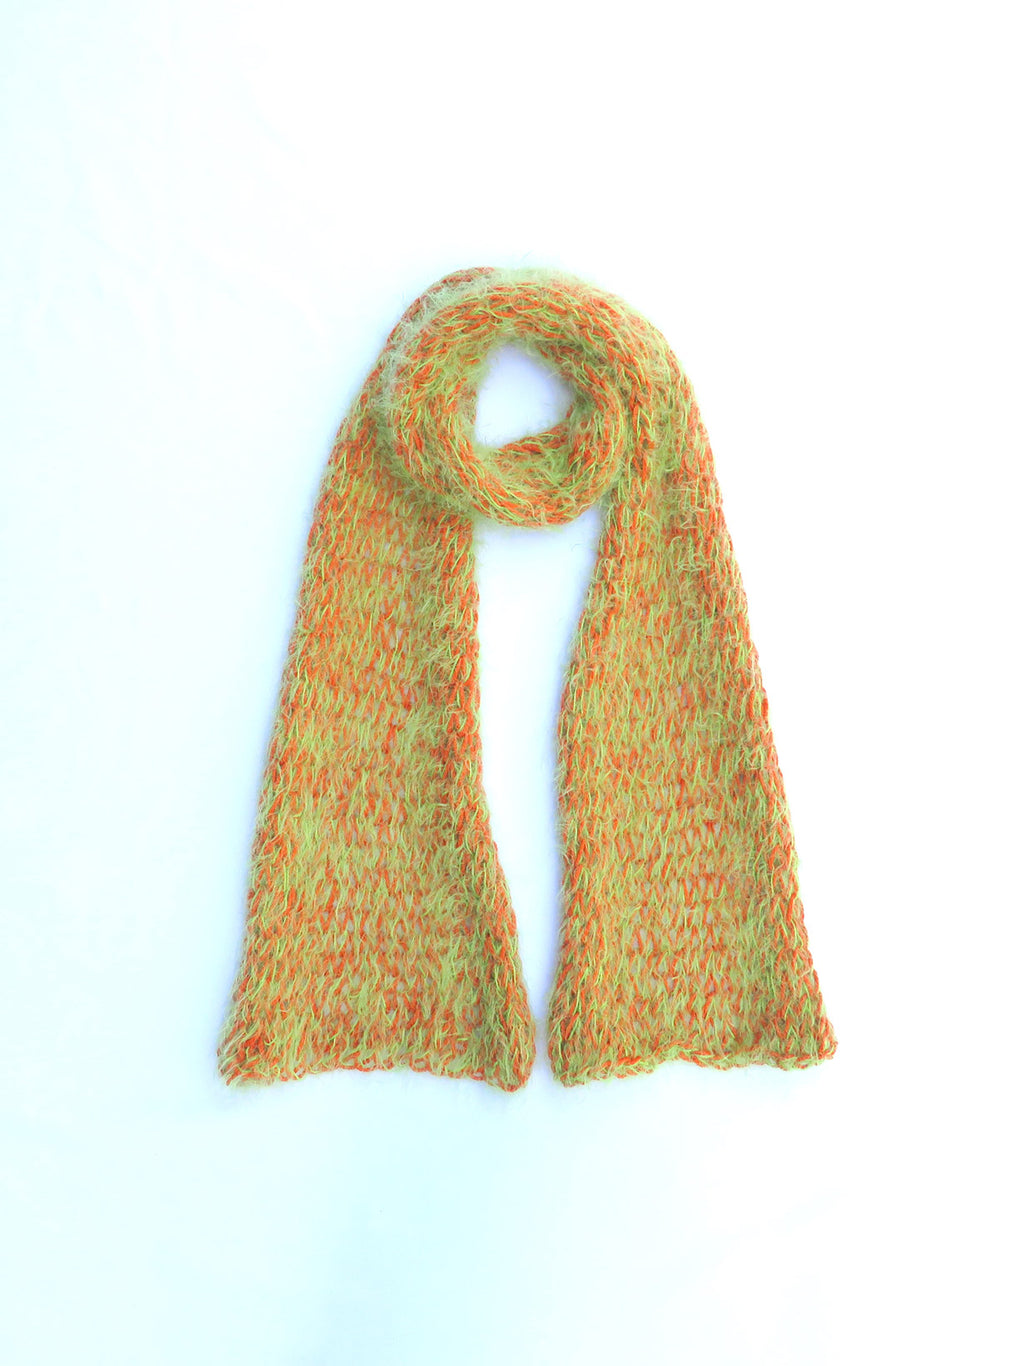 Dot knits super soft lime and orange scarf